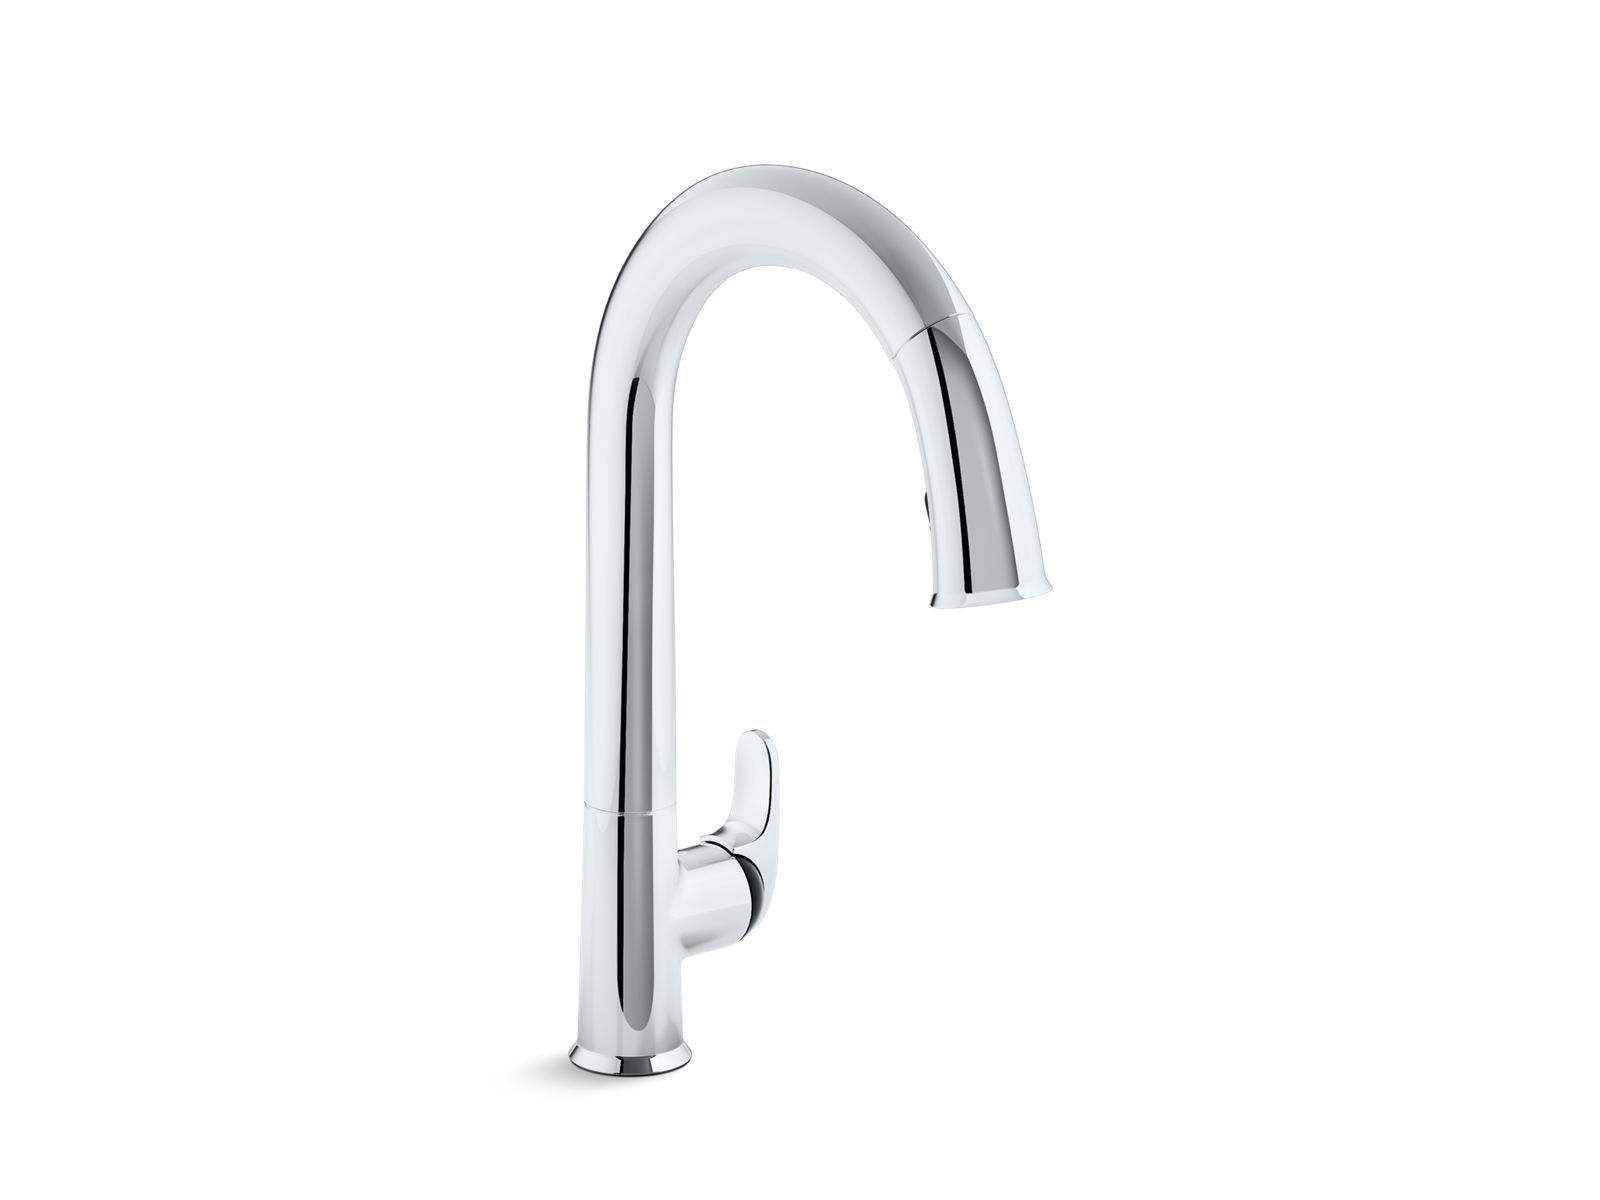 Sensate Touchless Kitchen Faucet with Black Accents